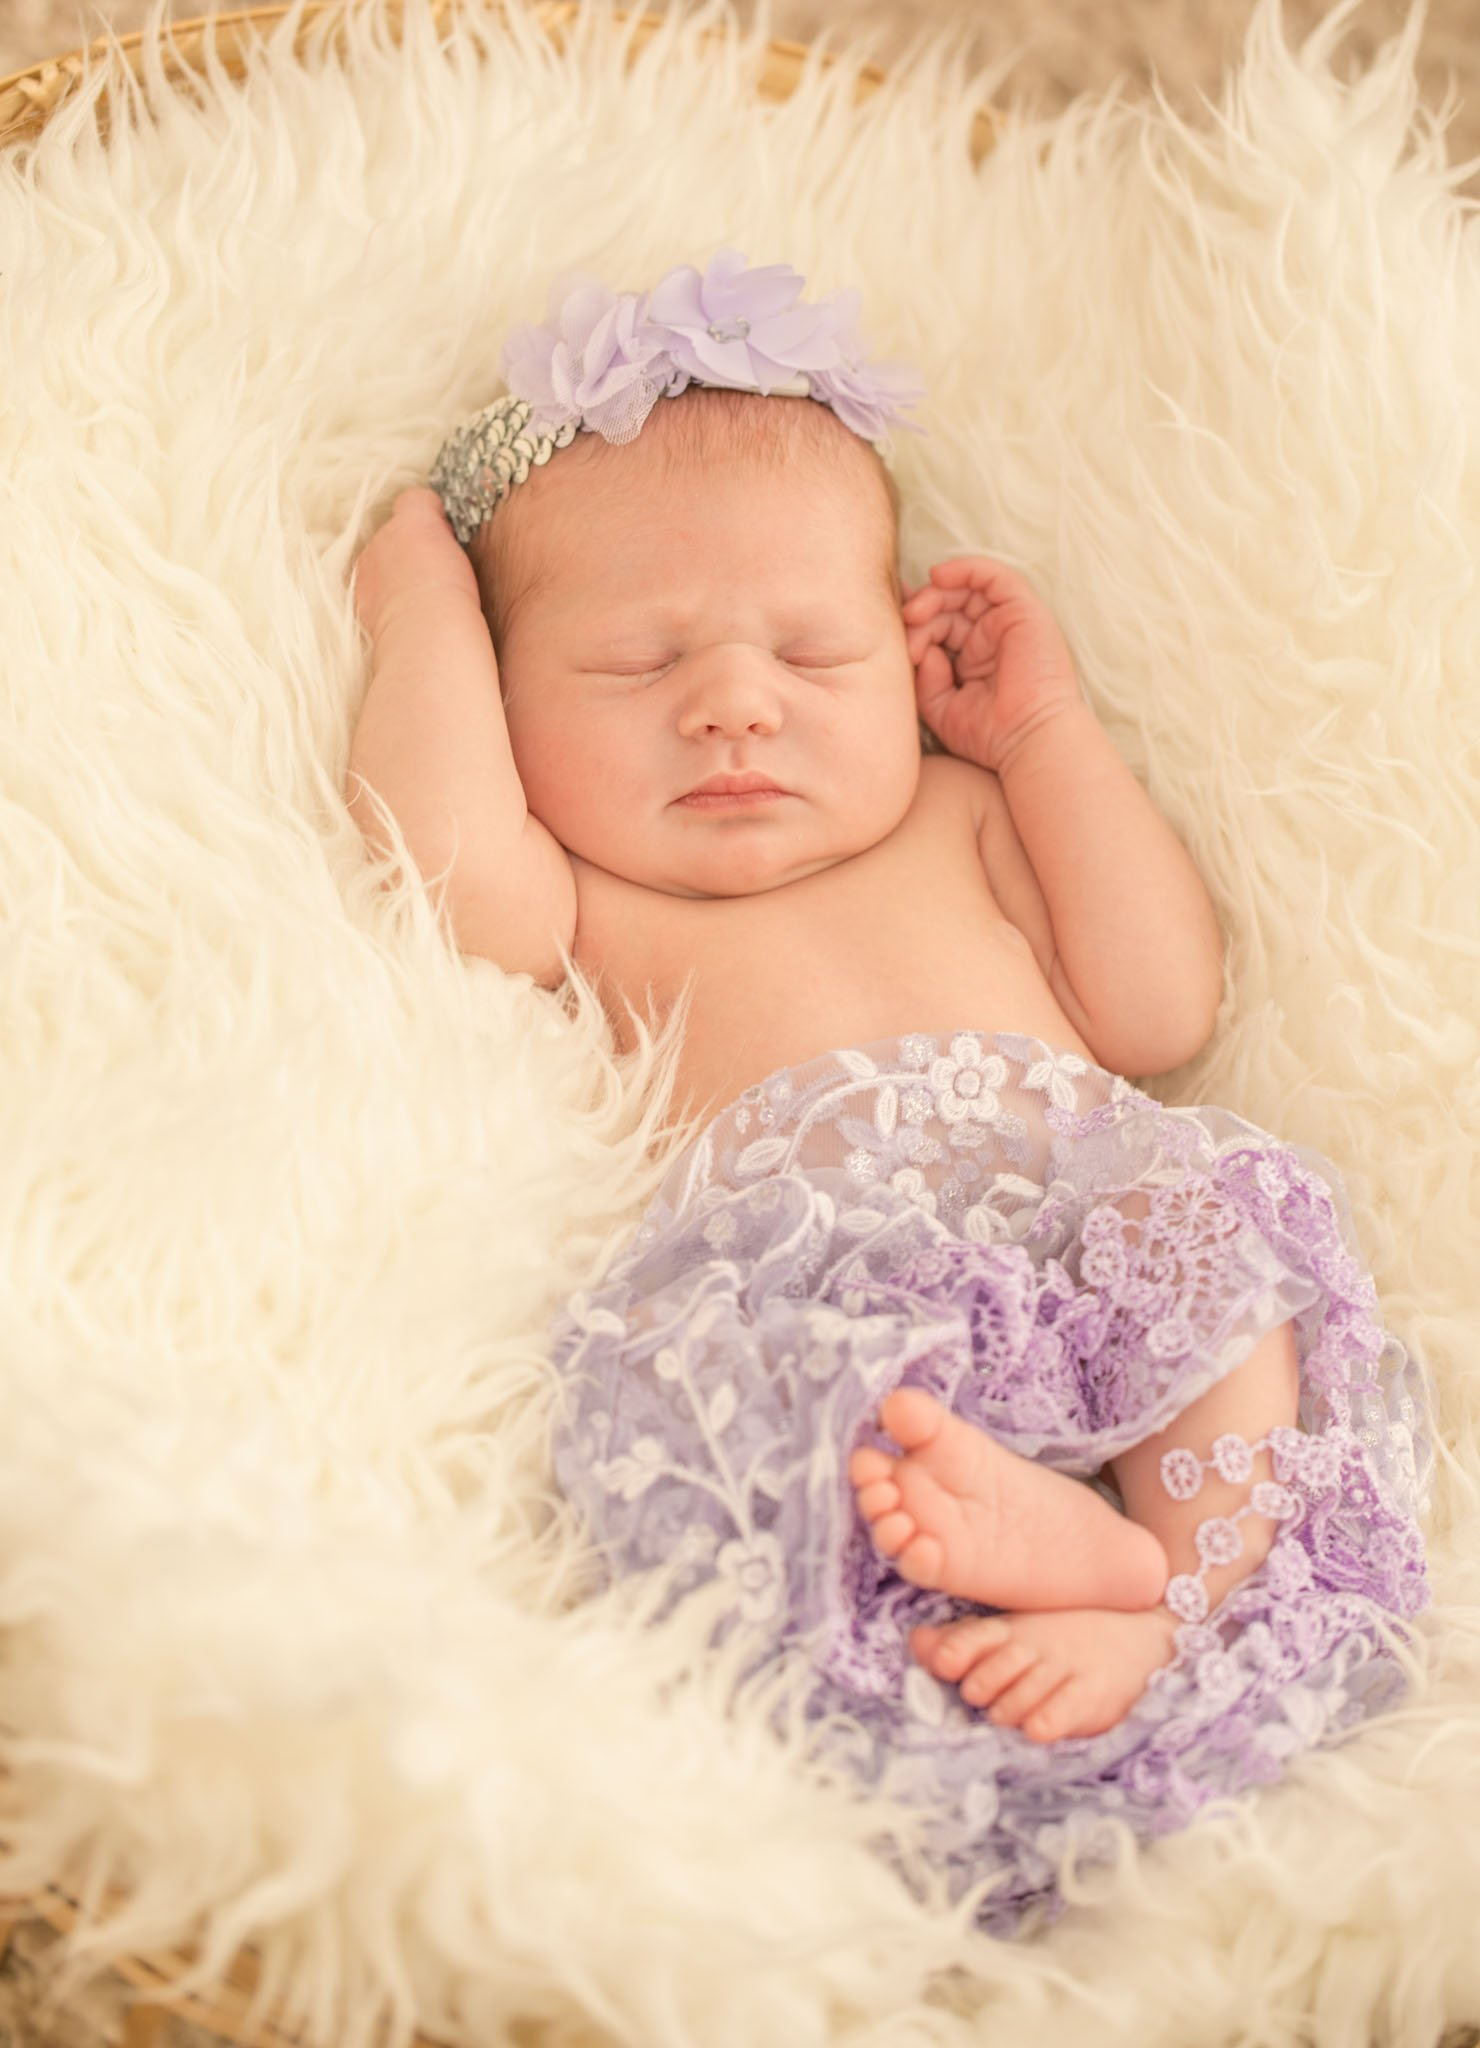 Newborn session with baby Felicity, Tania Miller Photography, Pontypool newborn photographer